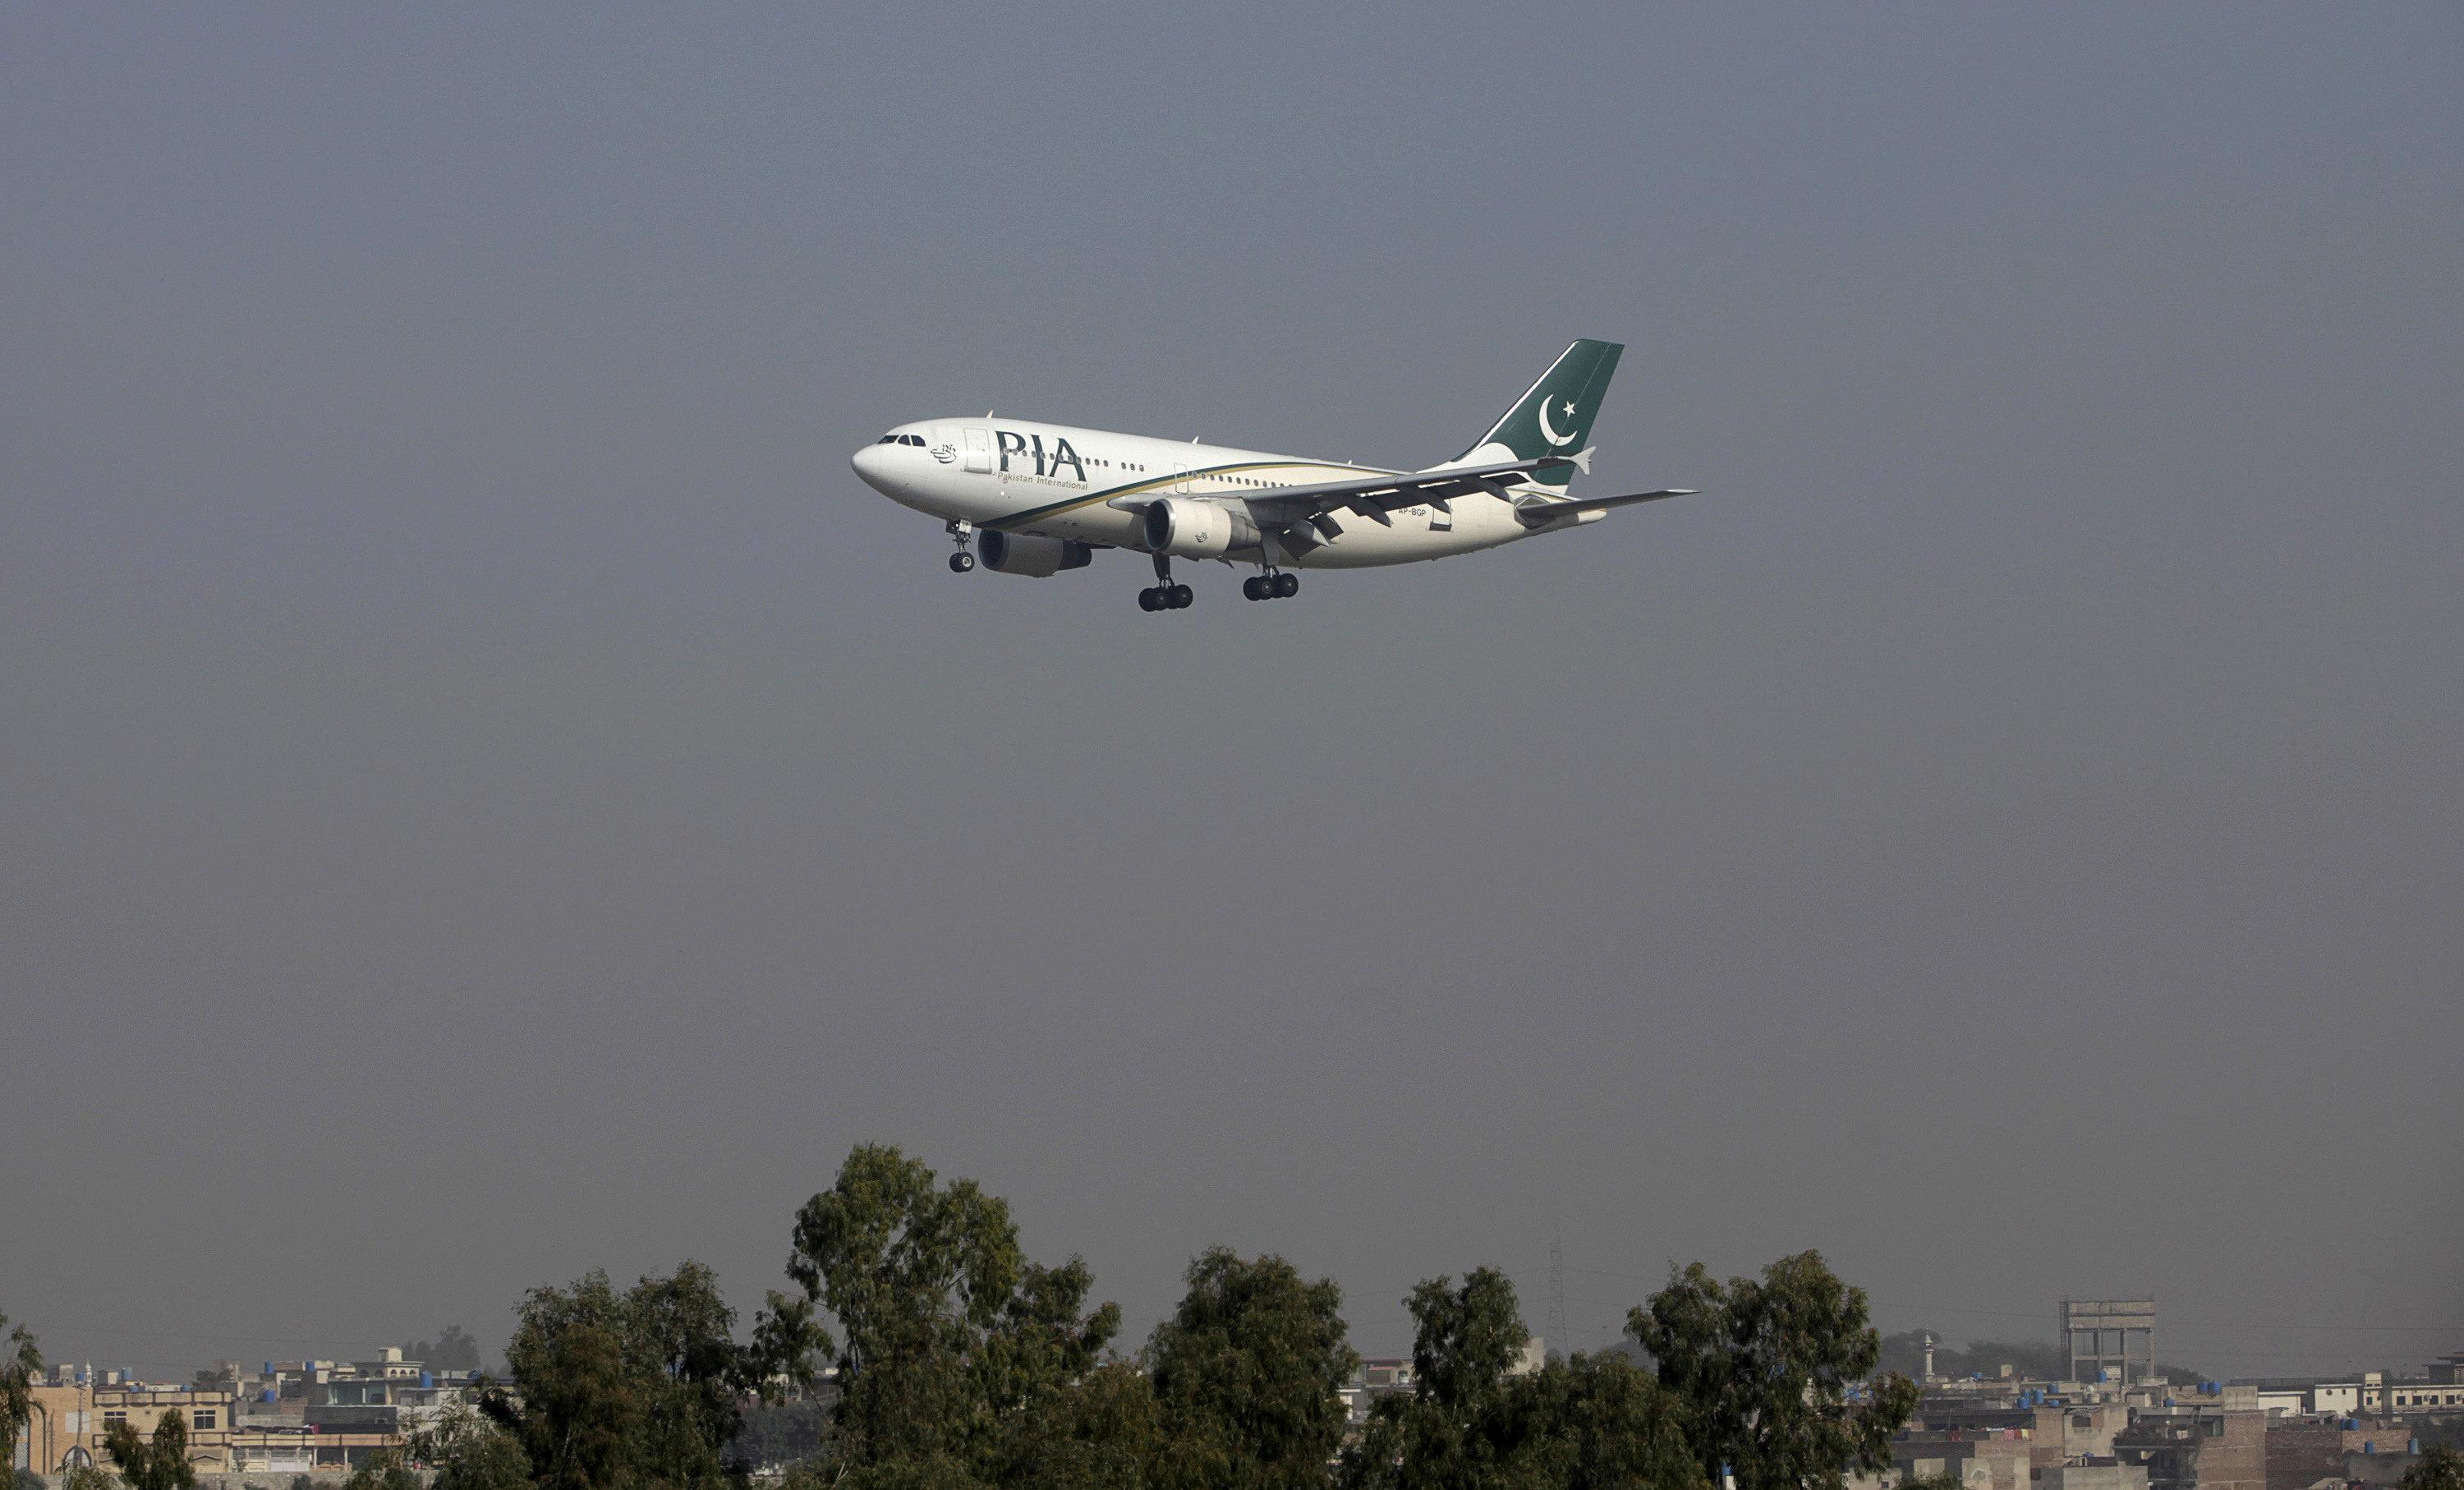 At least 36 dead in plane crash in Pakistan mountains